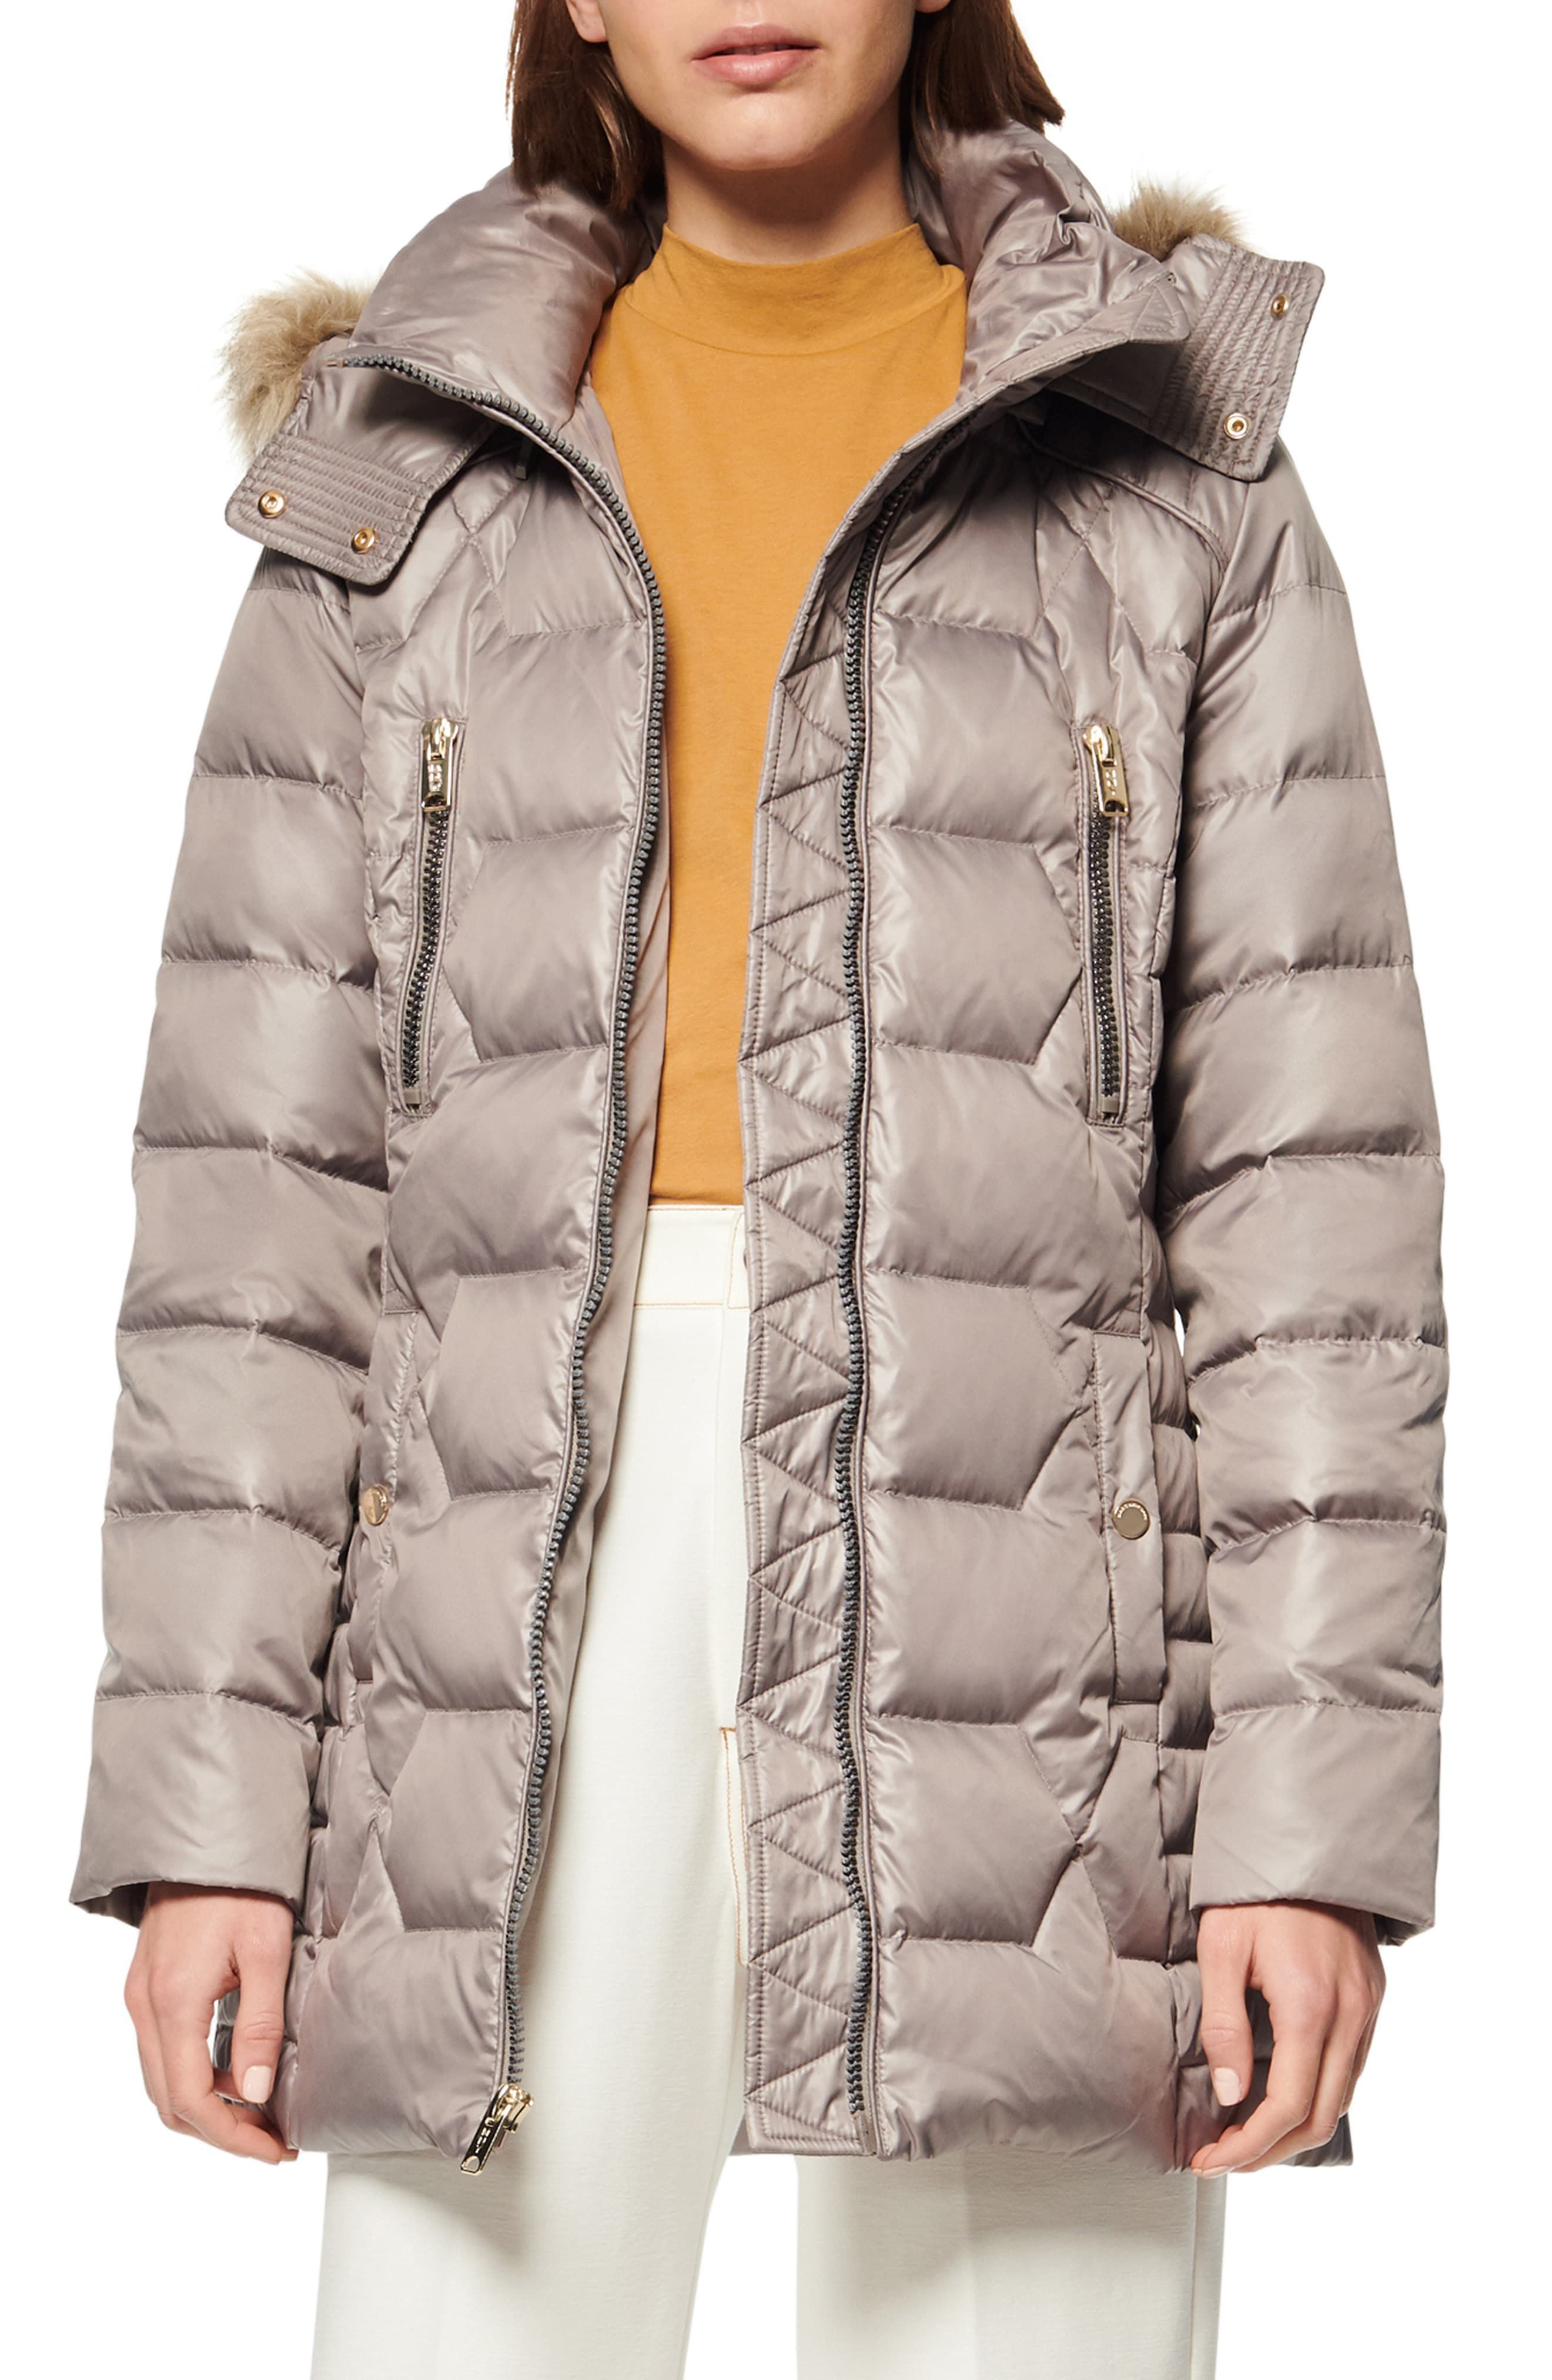 Marc New York Pomona Faux Fur Trim Down Puffer Jacket Nordstrom Womens Faux Fur Coat Womens Fashion Jackets Quilted Puffer Jacket [ 4048 x 2640 Pixel ]